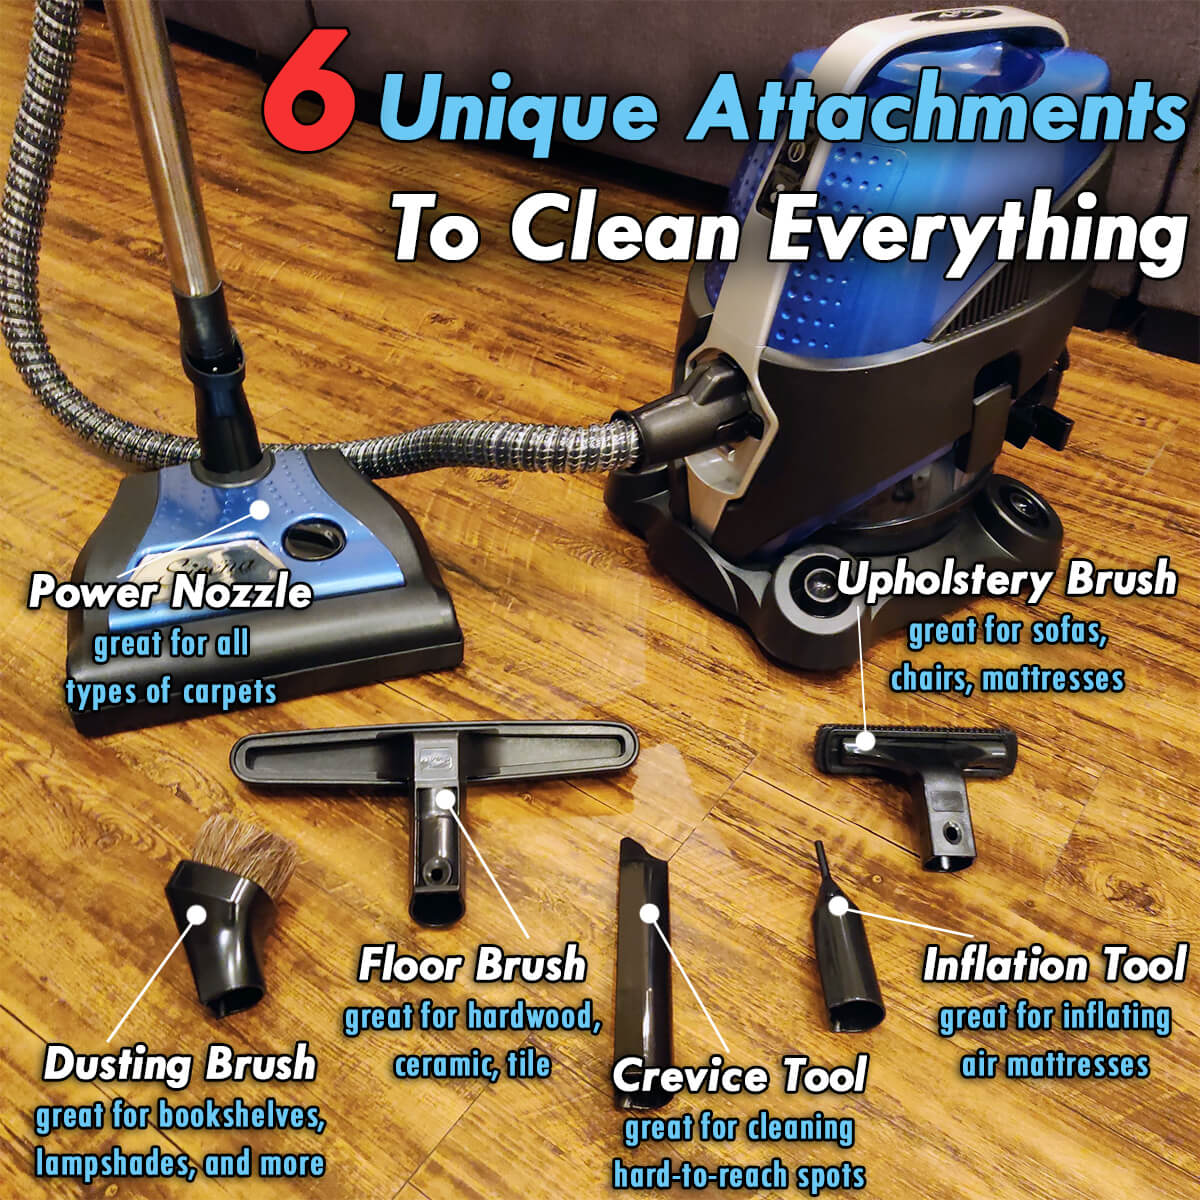 Sirena Vacuum Cleaner Attachments